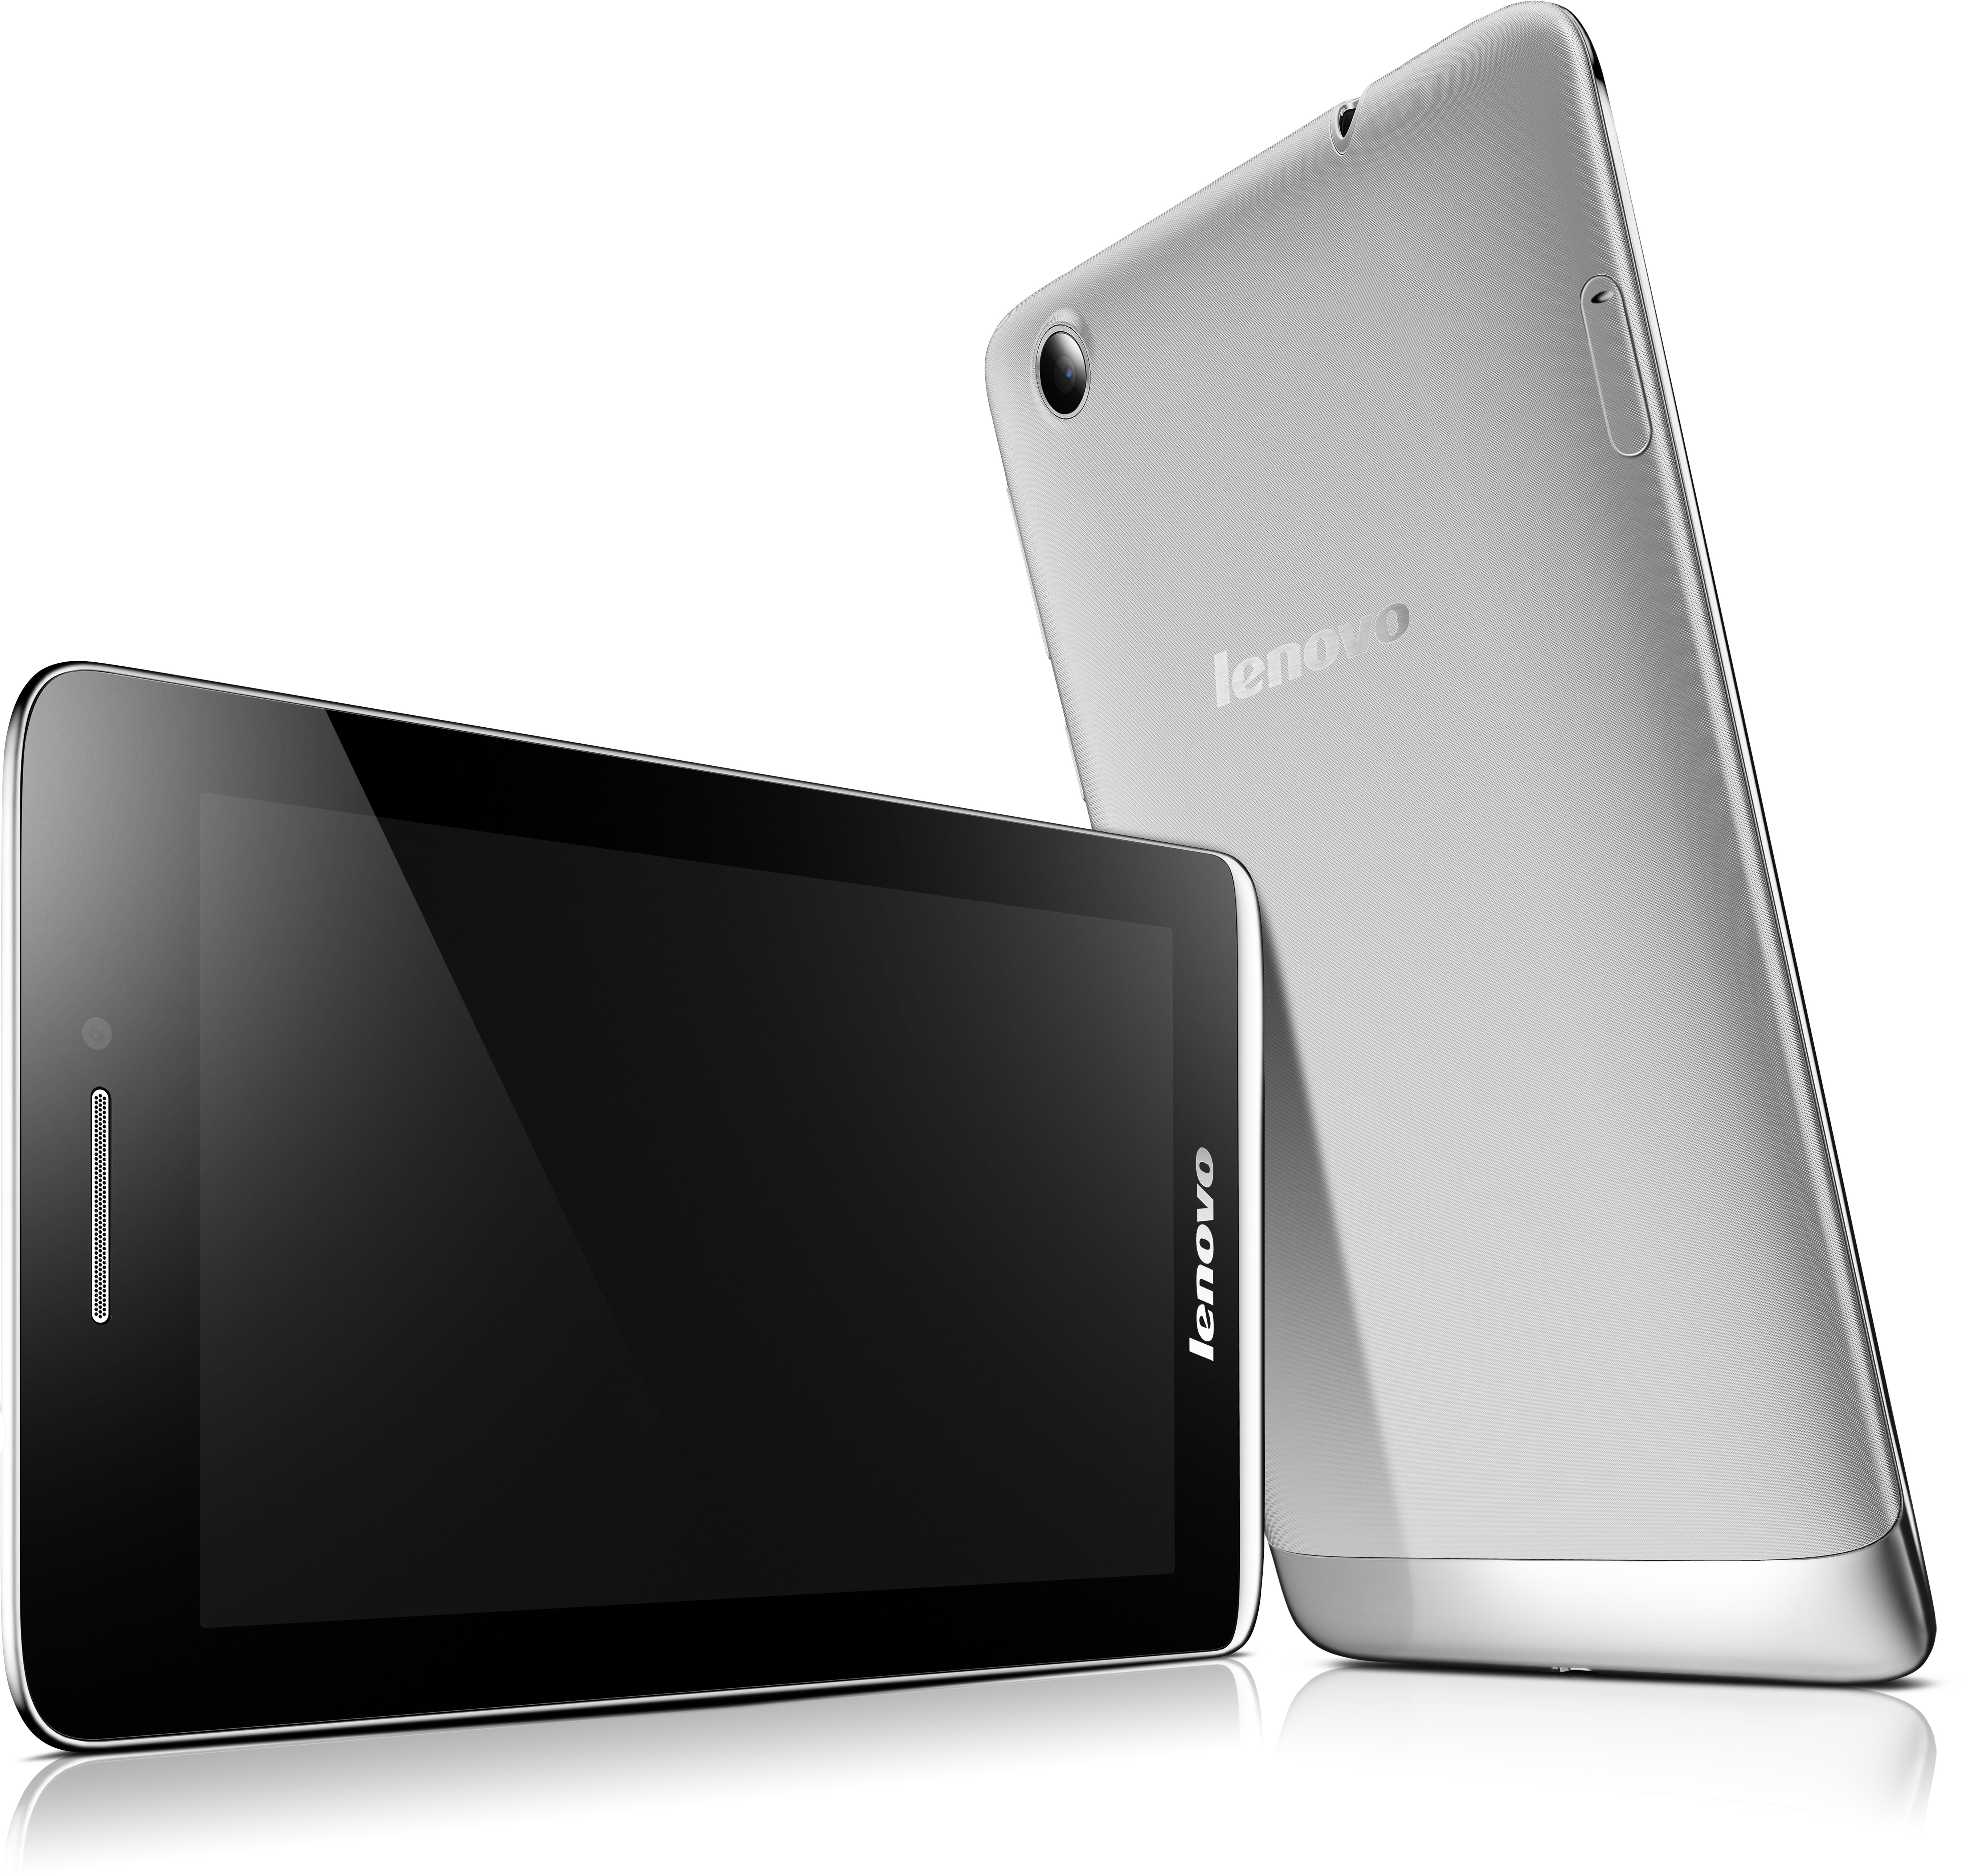 The review Lenovo A 5000. Reviews and Specs